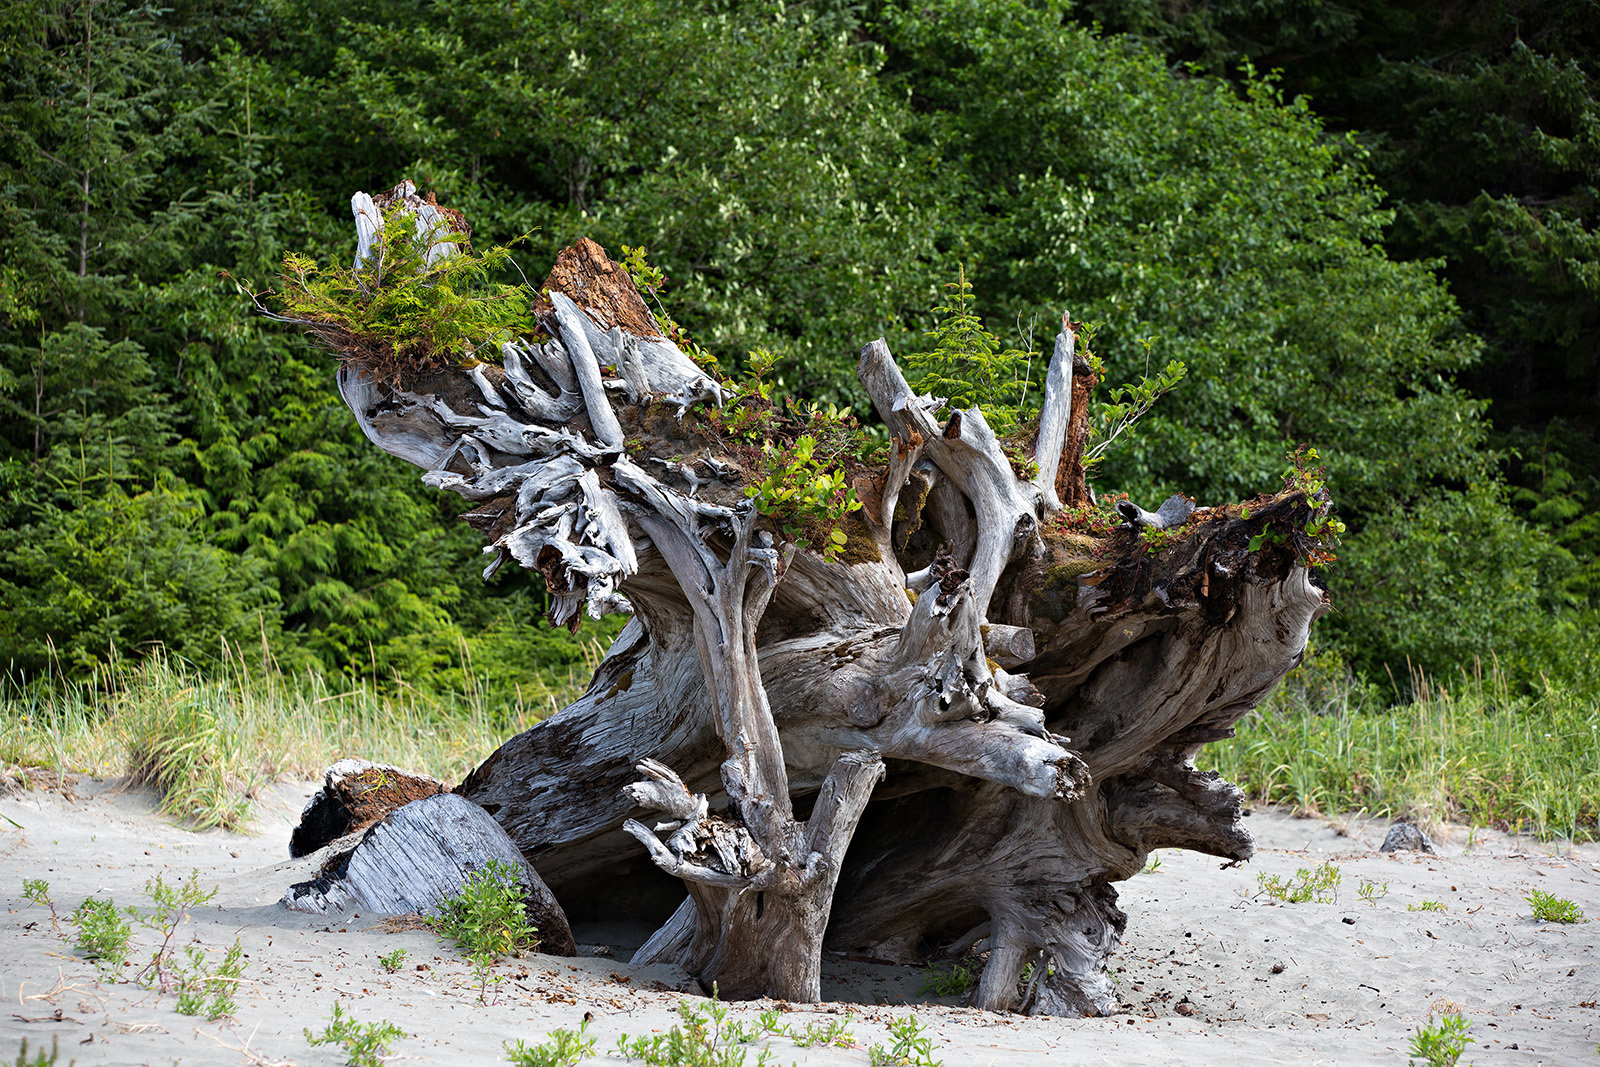 A natural stumpery in BC's Cape Scott Provincial Park